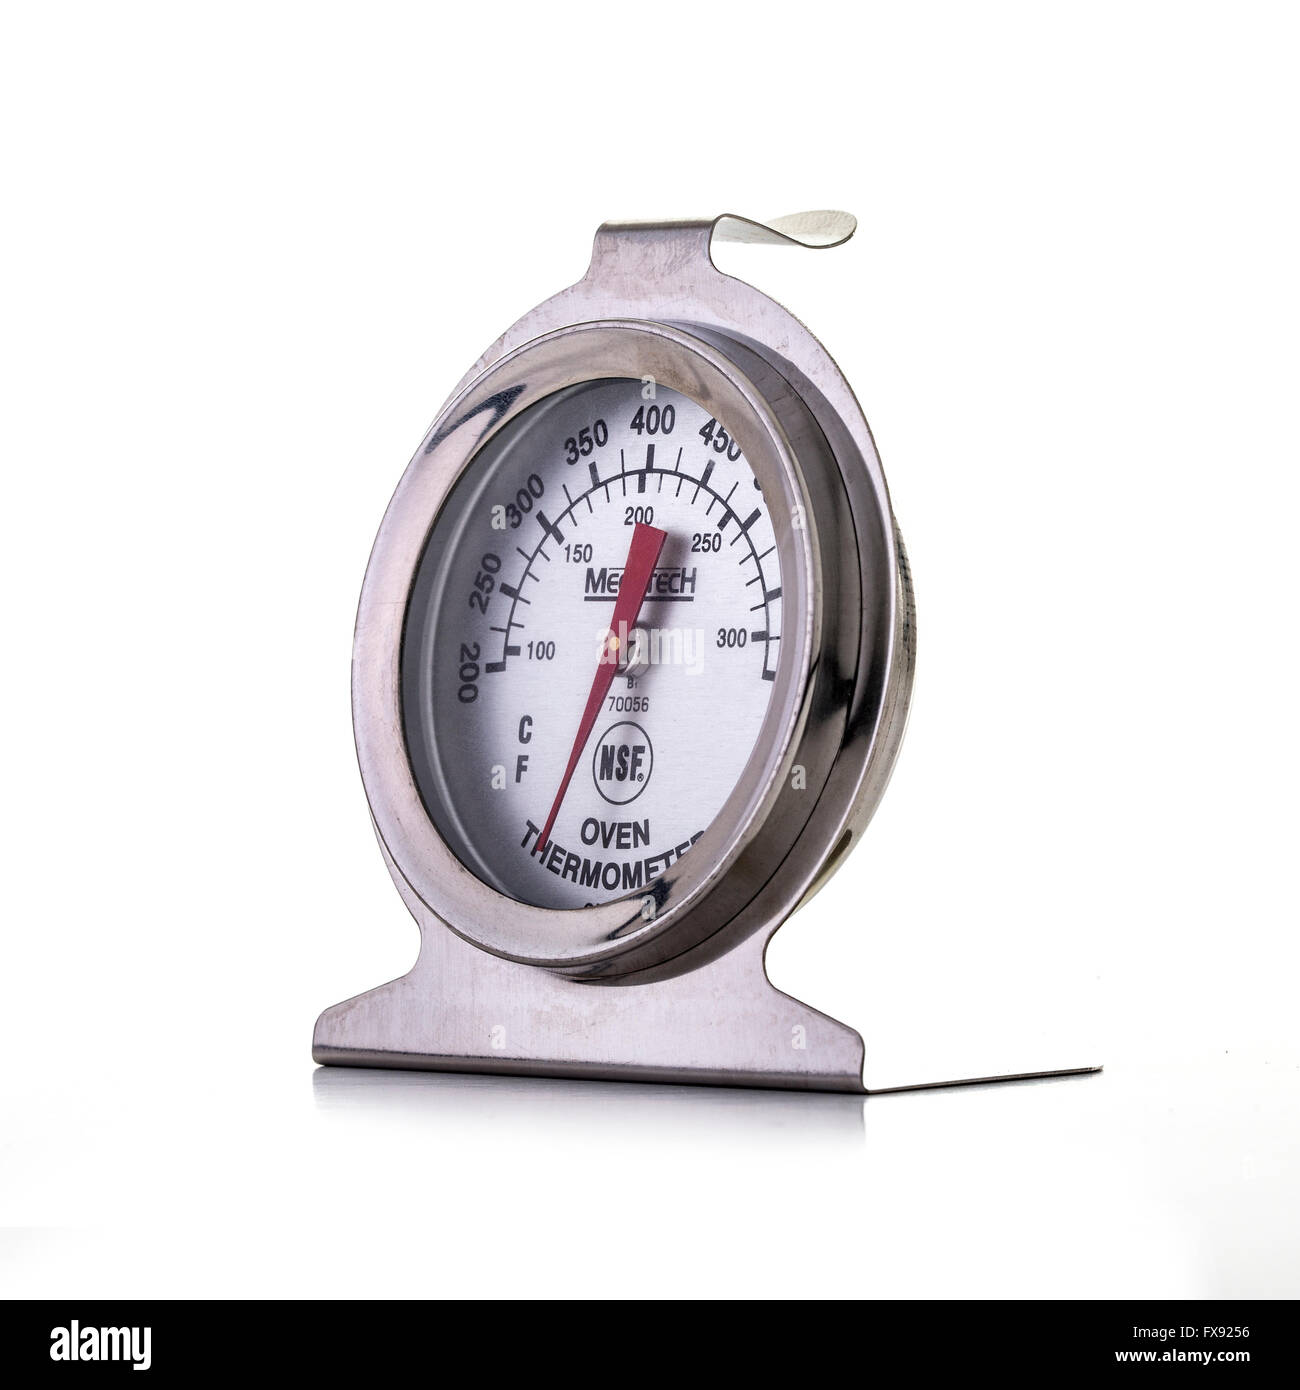 Oven Thermometer on a white background - Stock Image